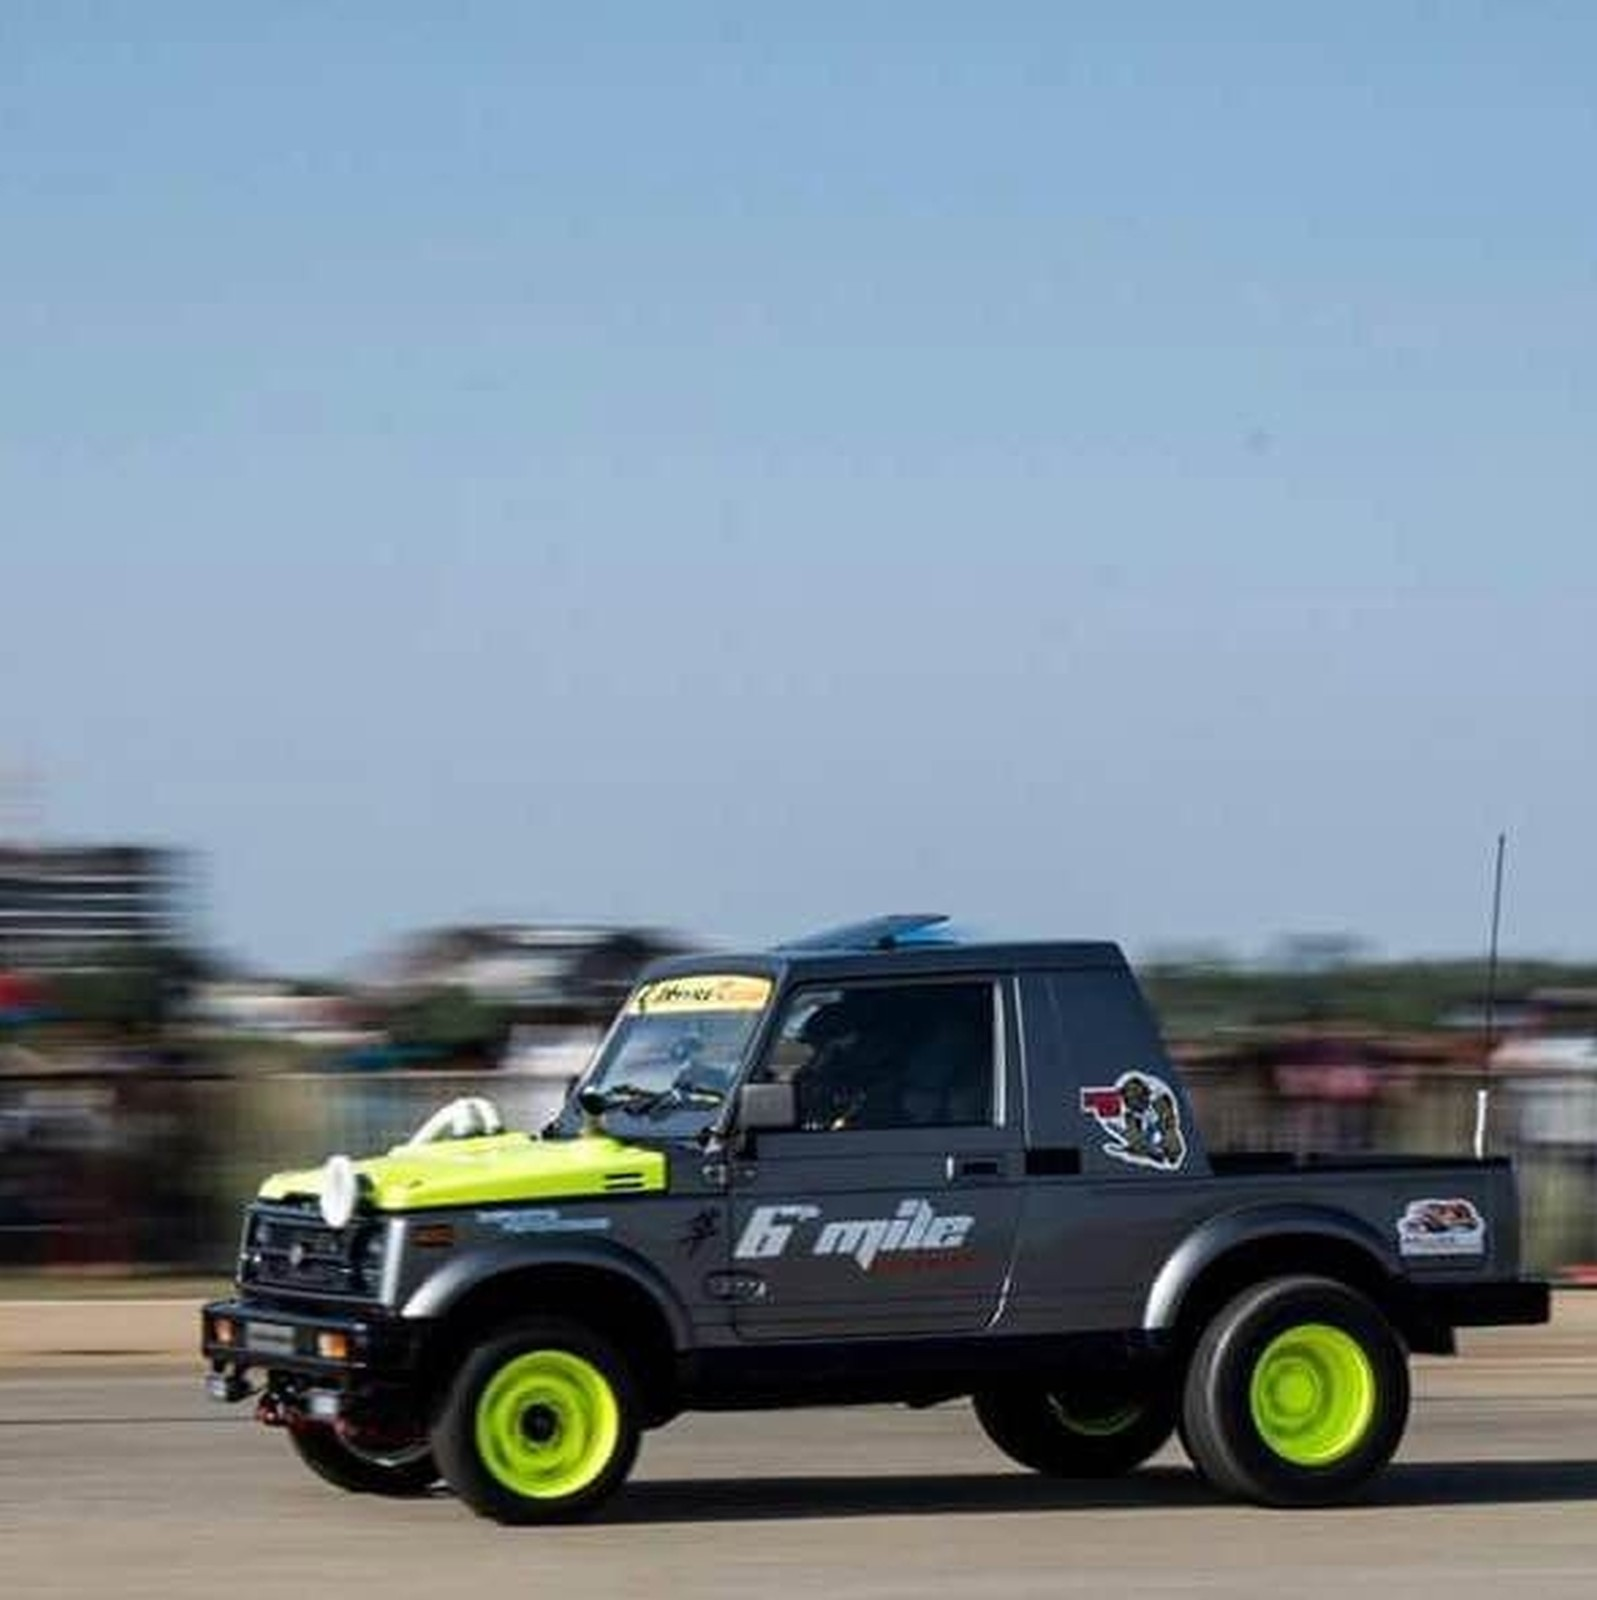 VIDEO: This Big bang Gypsy can melt down a dragstrip with